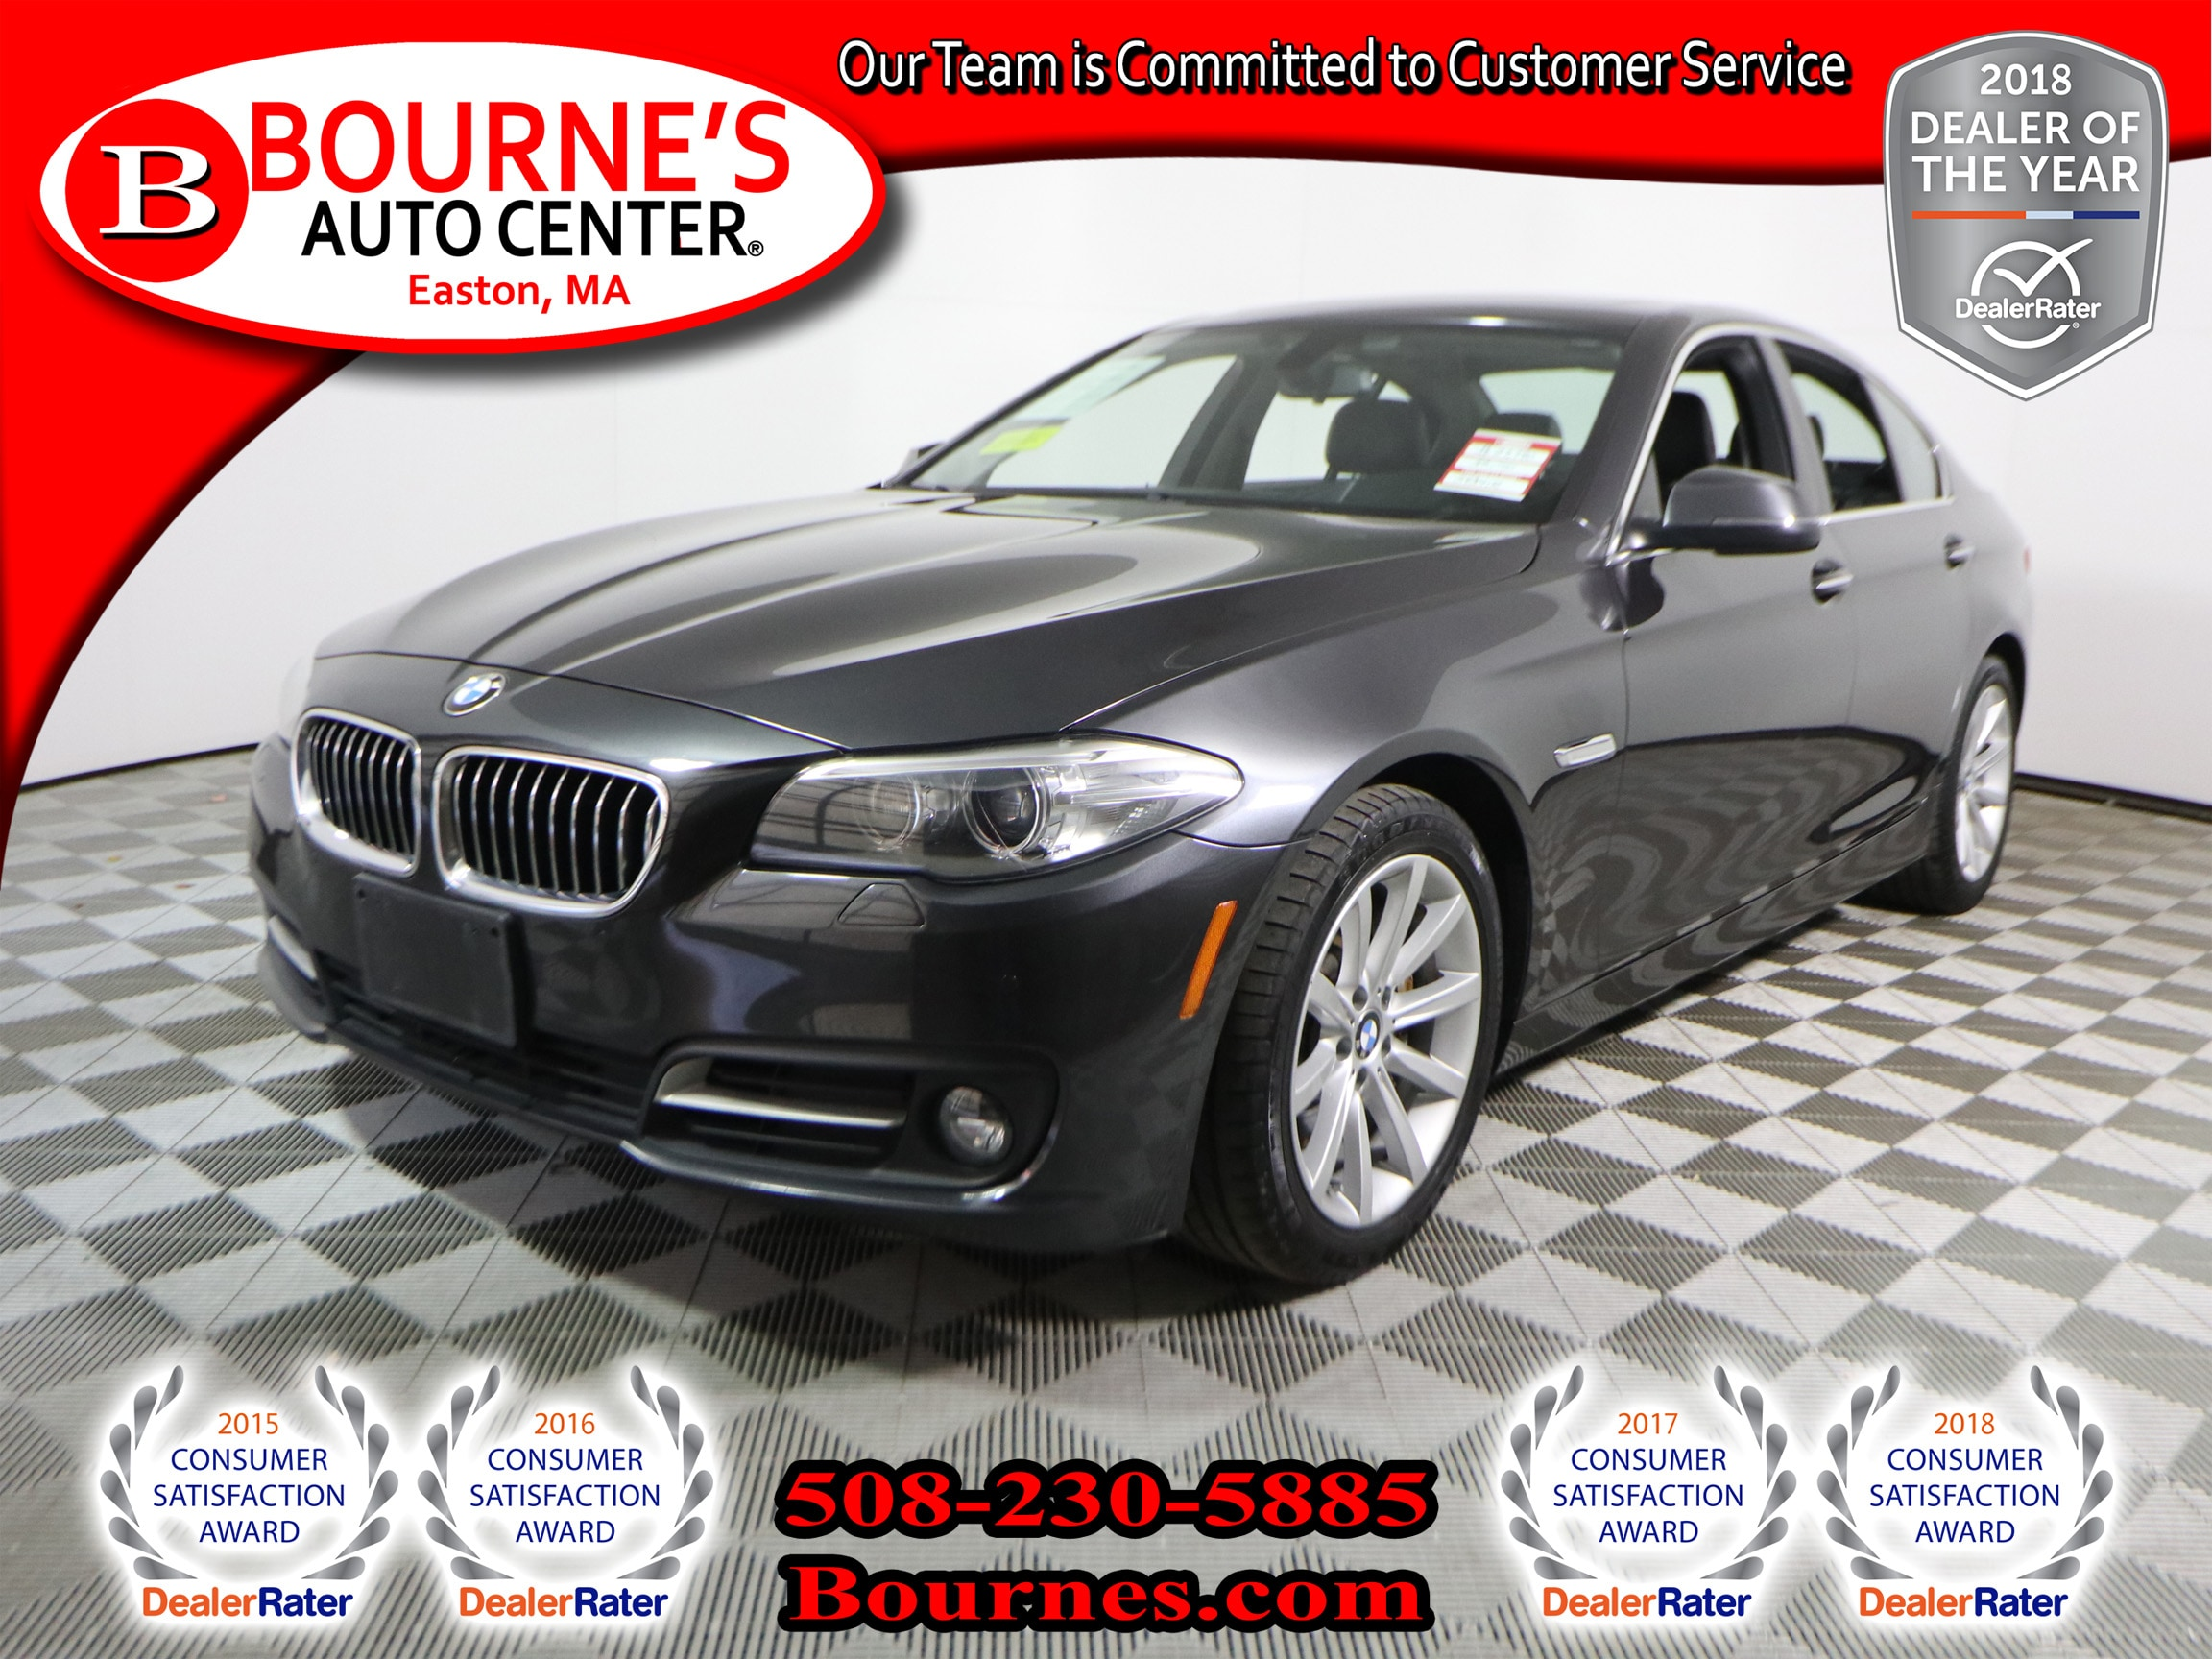 2015 BMW 5 Series - Fair Car Ownership